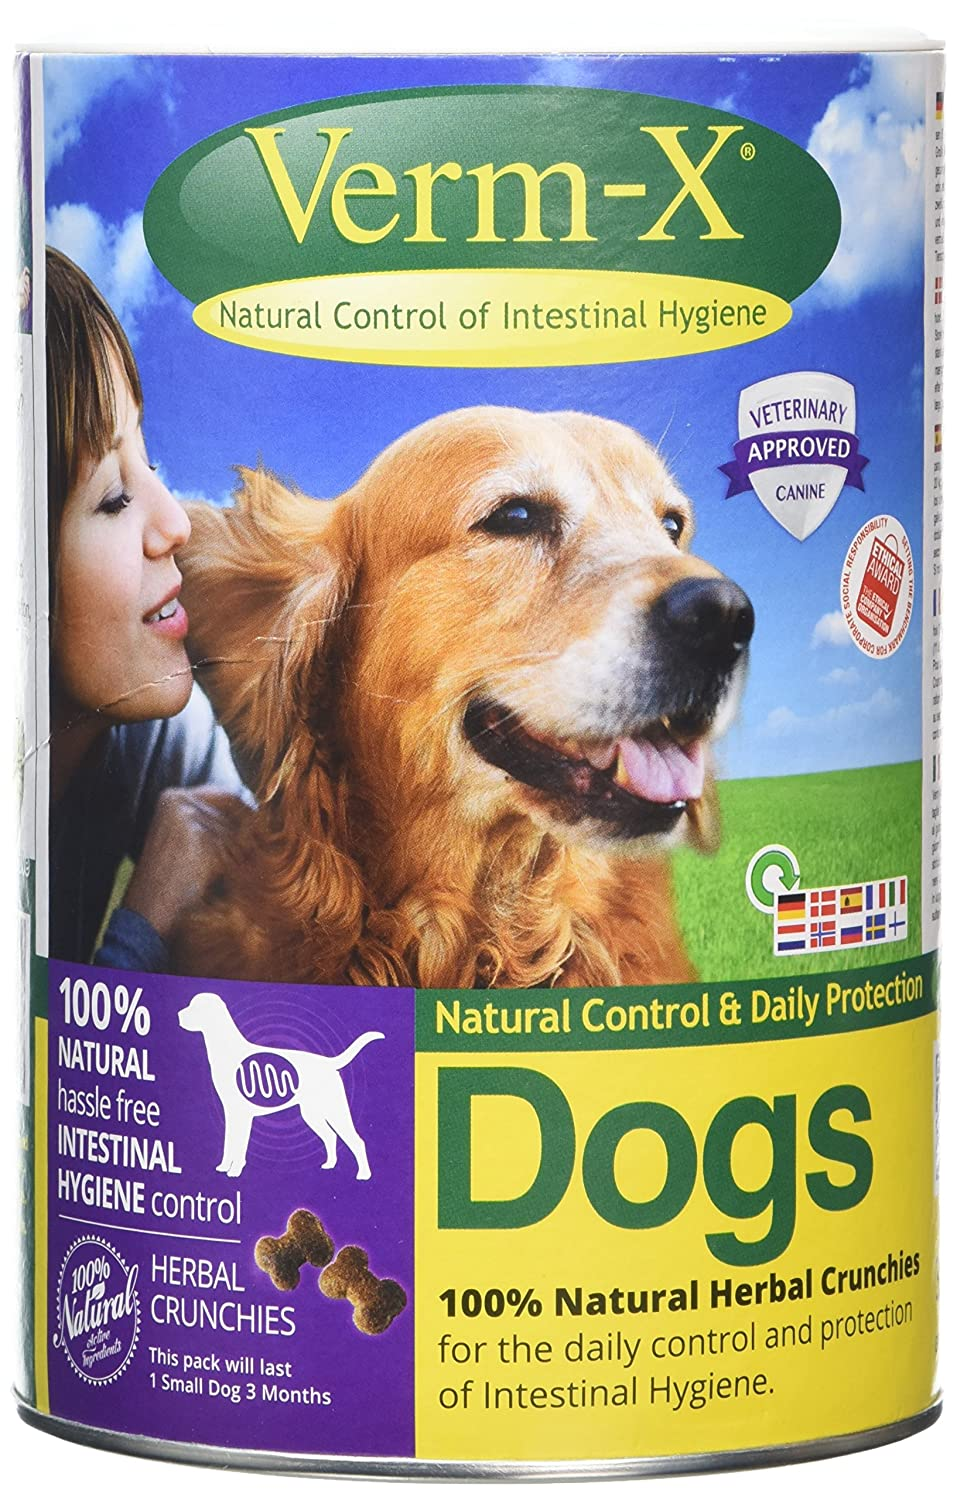 Verm X Herbal Crunchies for Dogs (Pack Size: 650g) Verm-X